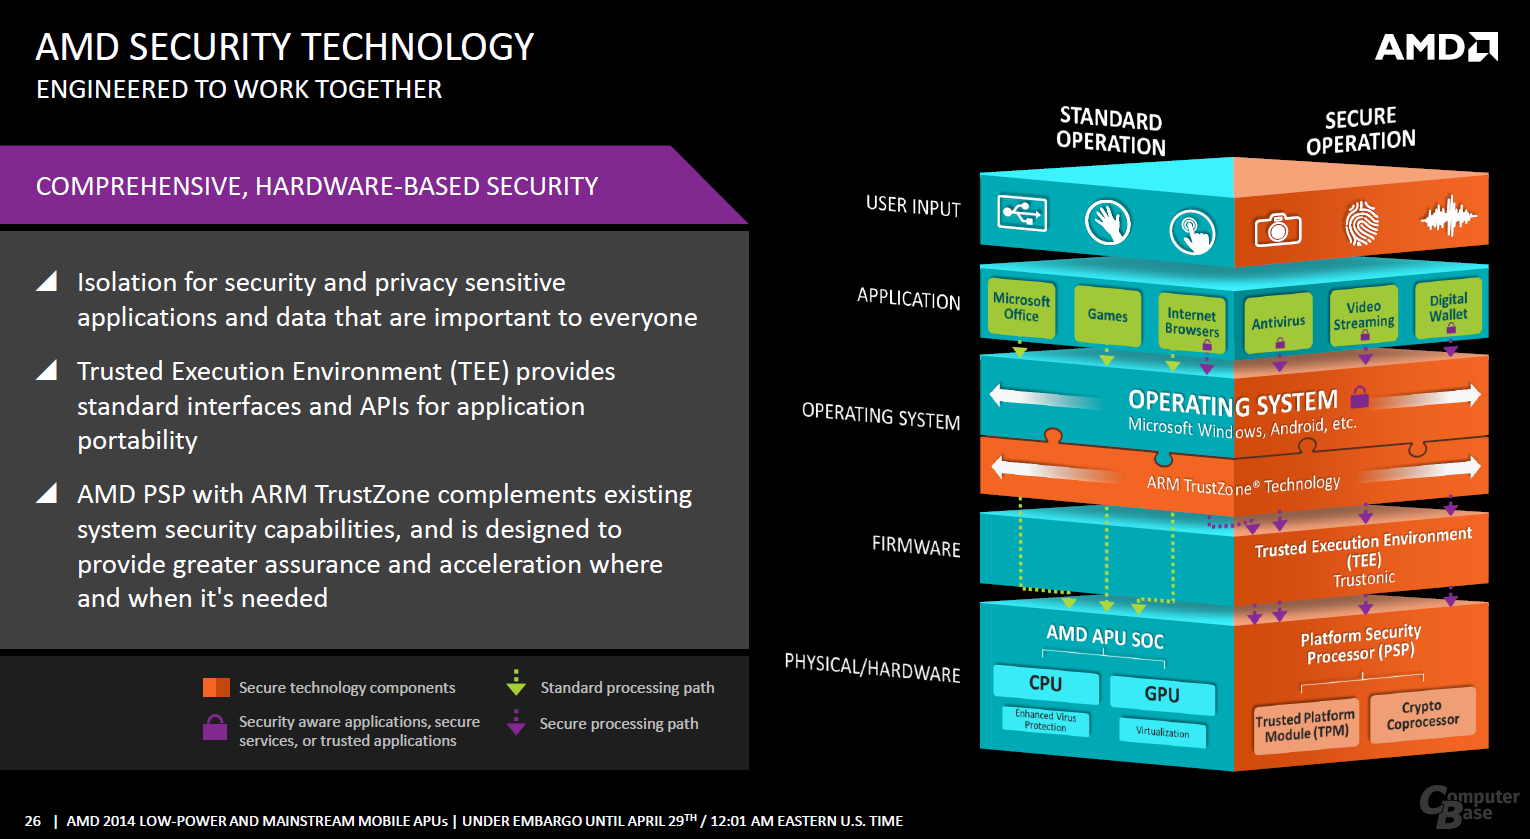 AMD Security Technology